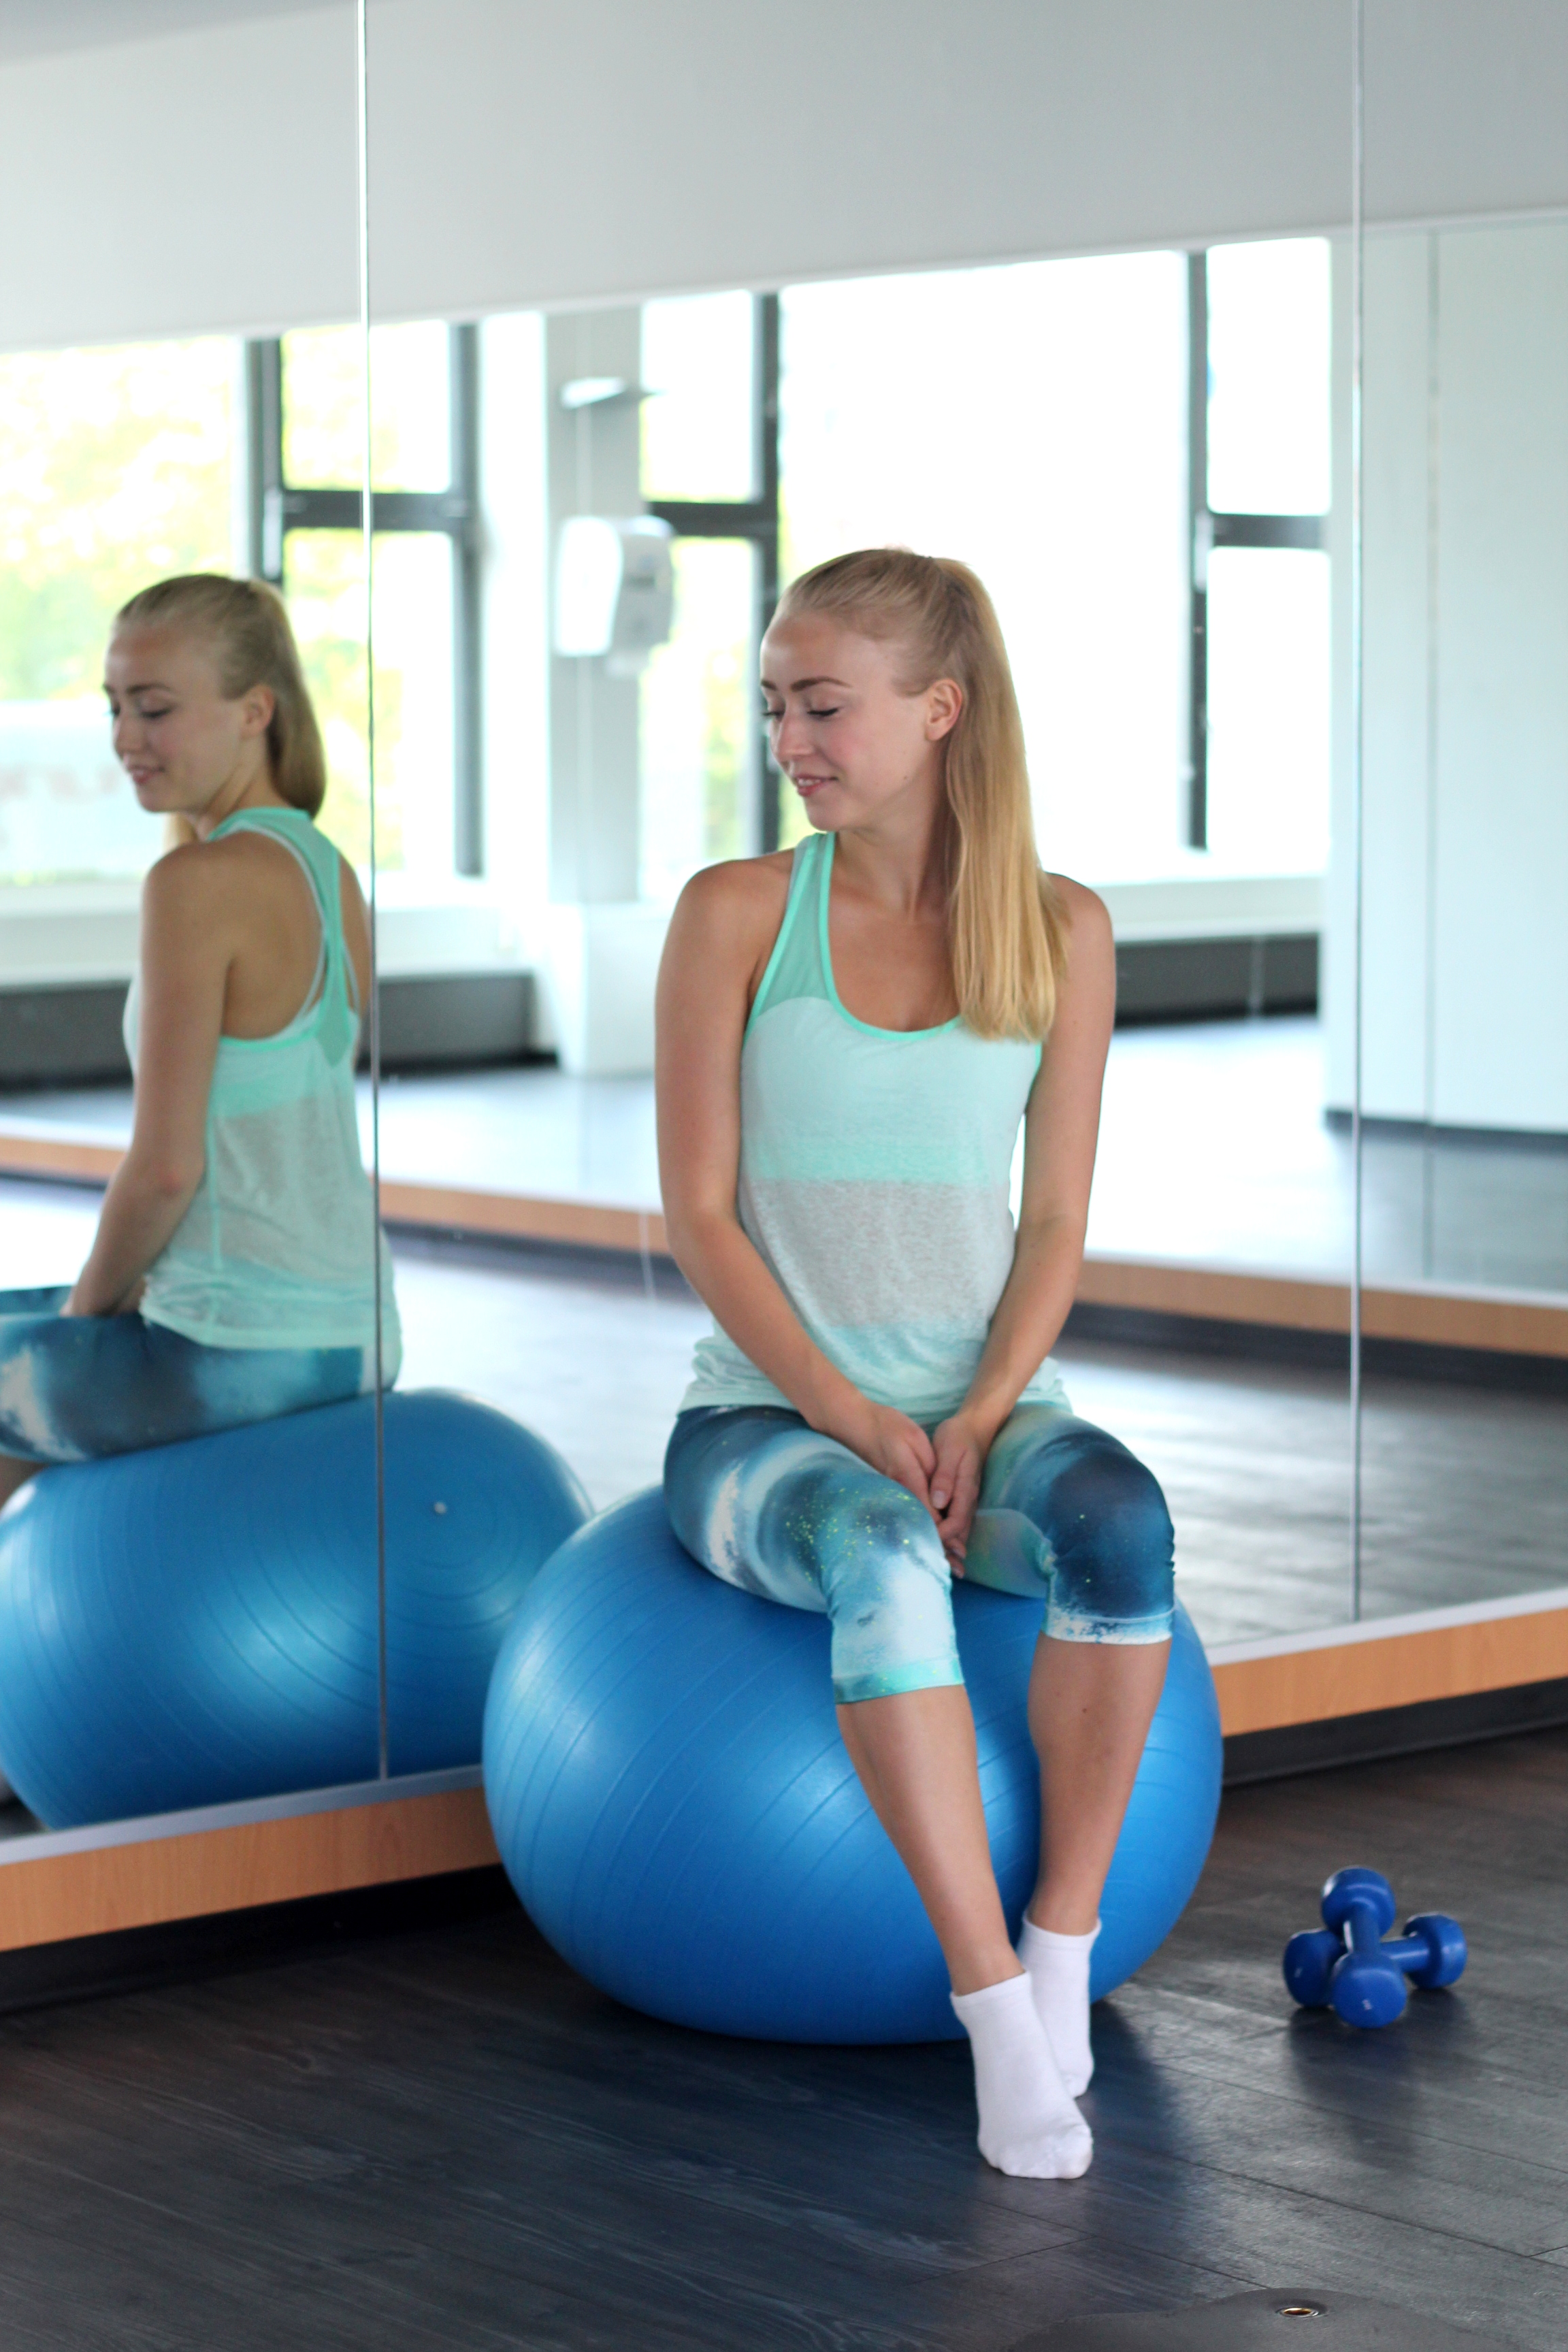 Fitness Routine - Los gehts! - Luise Morgeneyer